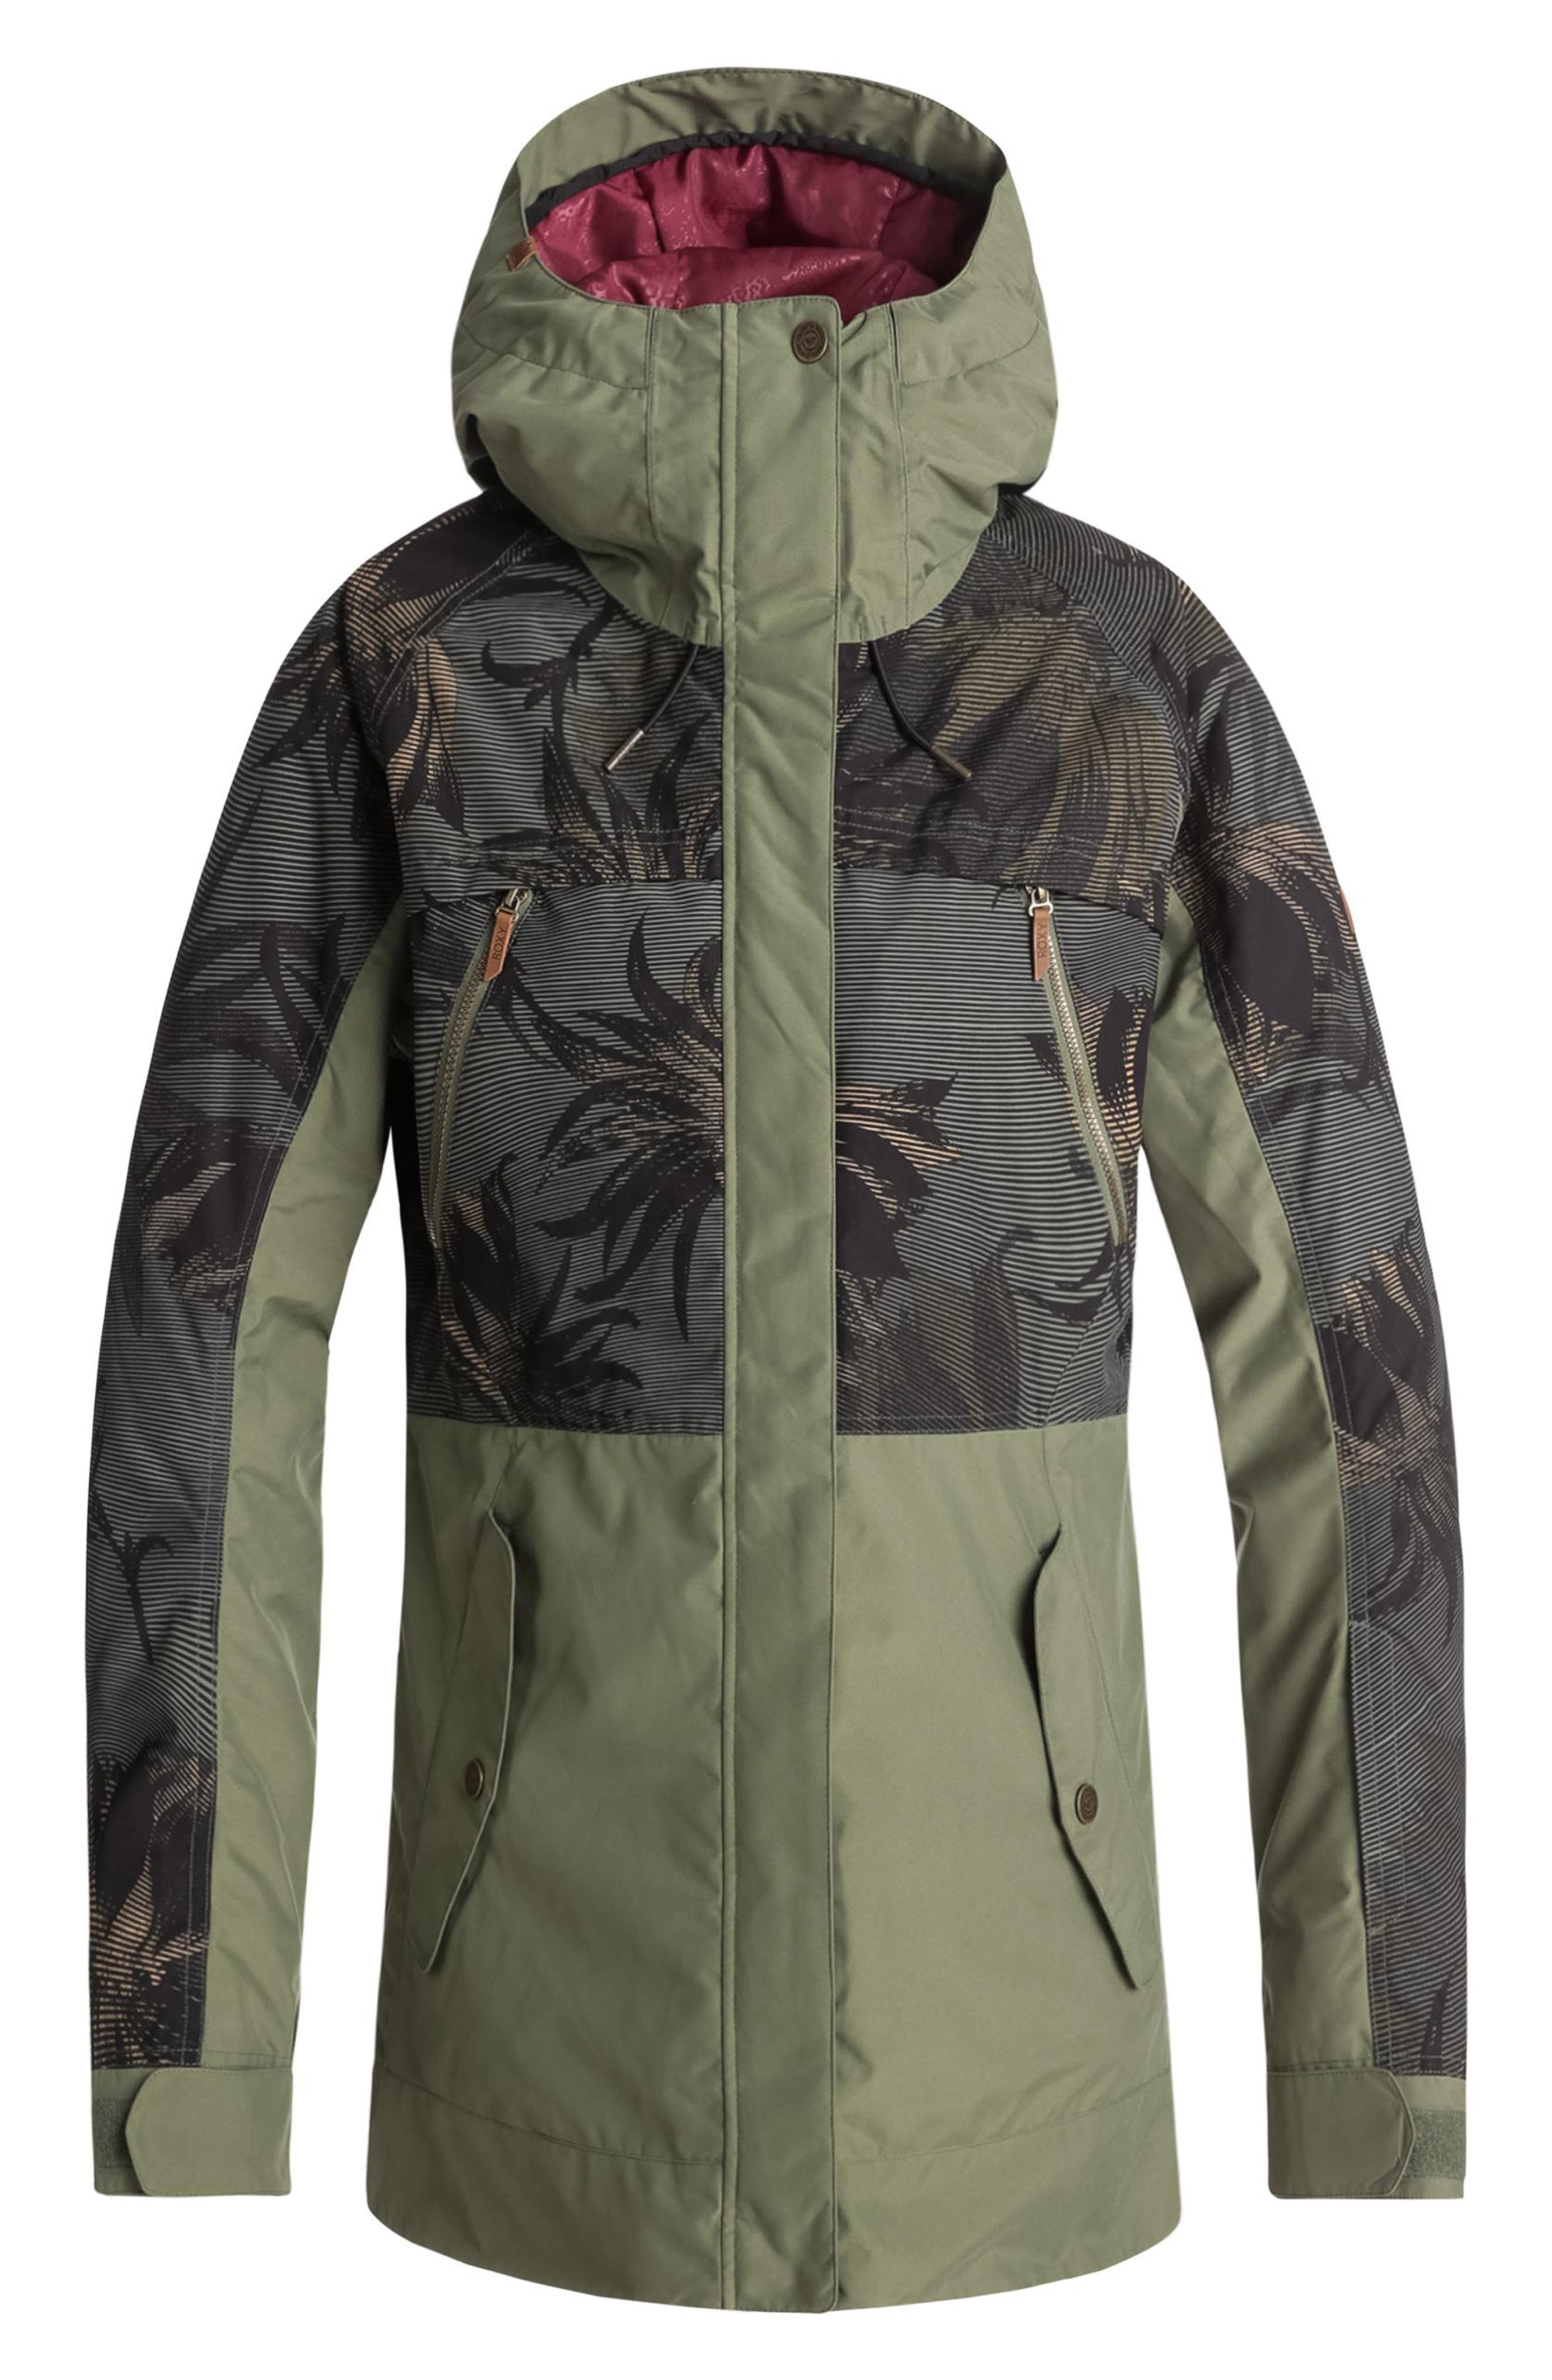 Waterproof DryFlight<sup>®</sup> Thinsulate<sup>®</sup> Insulated Snow Jacket,                         Main,                         color, FOUR LEAF CLOVER-SWELL FLOWERS